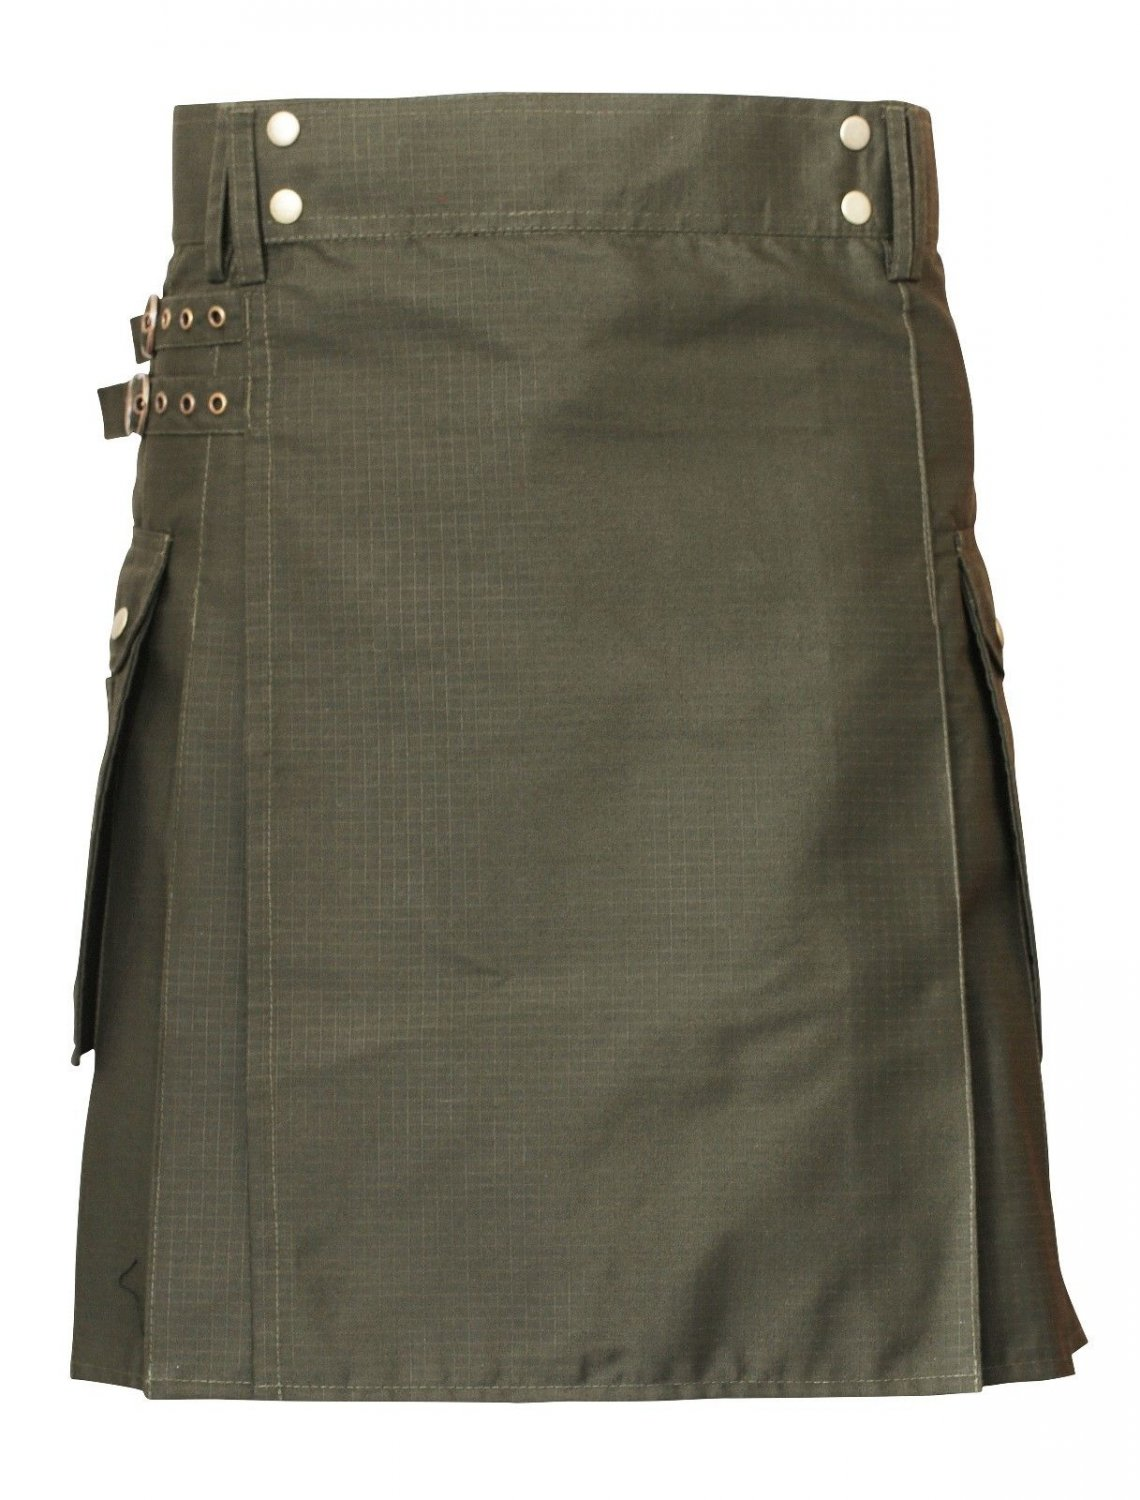 34 Size Traditional Scottish Utility Heavy Rip Stop Cotton Kilt Olive Green Cotton Deluxe Kilt